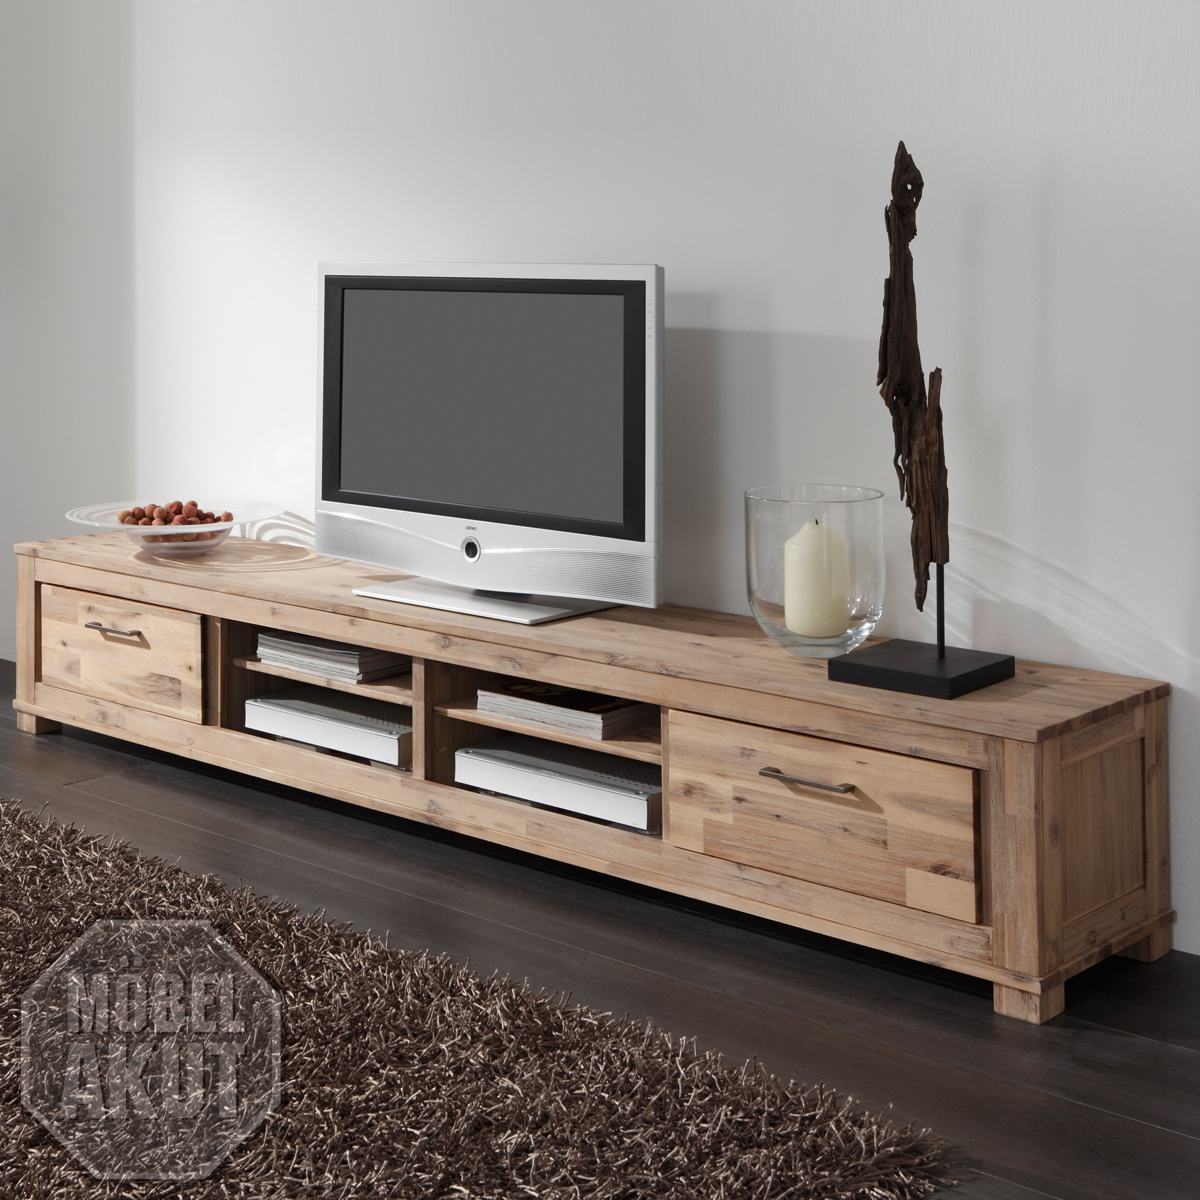 lowboard canaria tv board in akazie massiv sand neu ebay. Black Bedroom Furniture Sets. Home Design Ideas